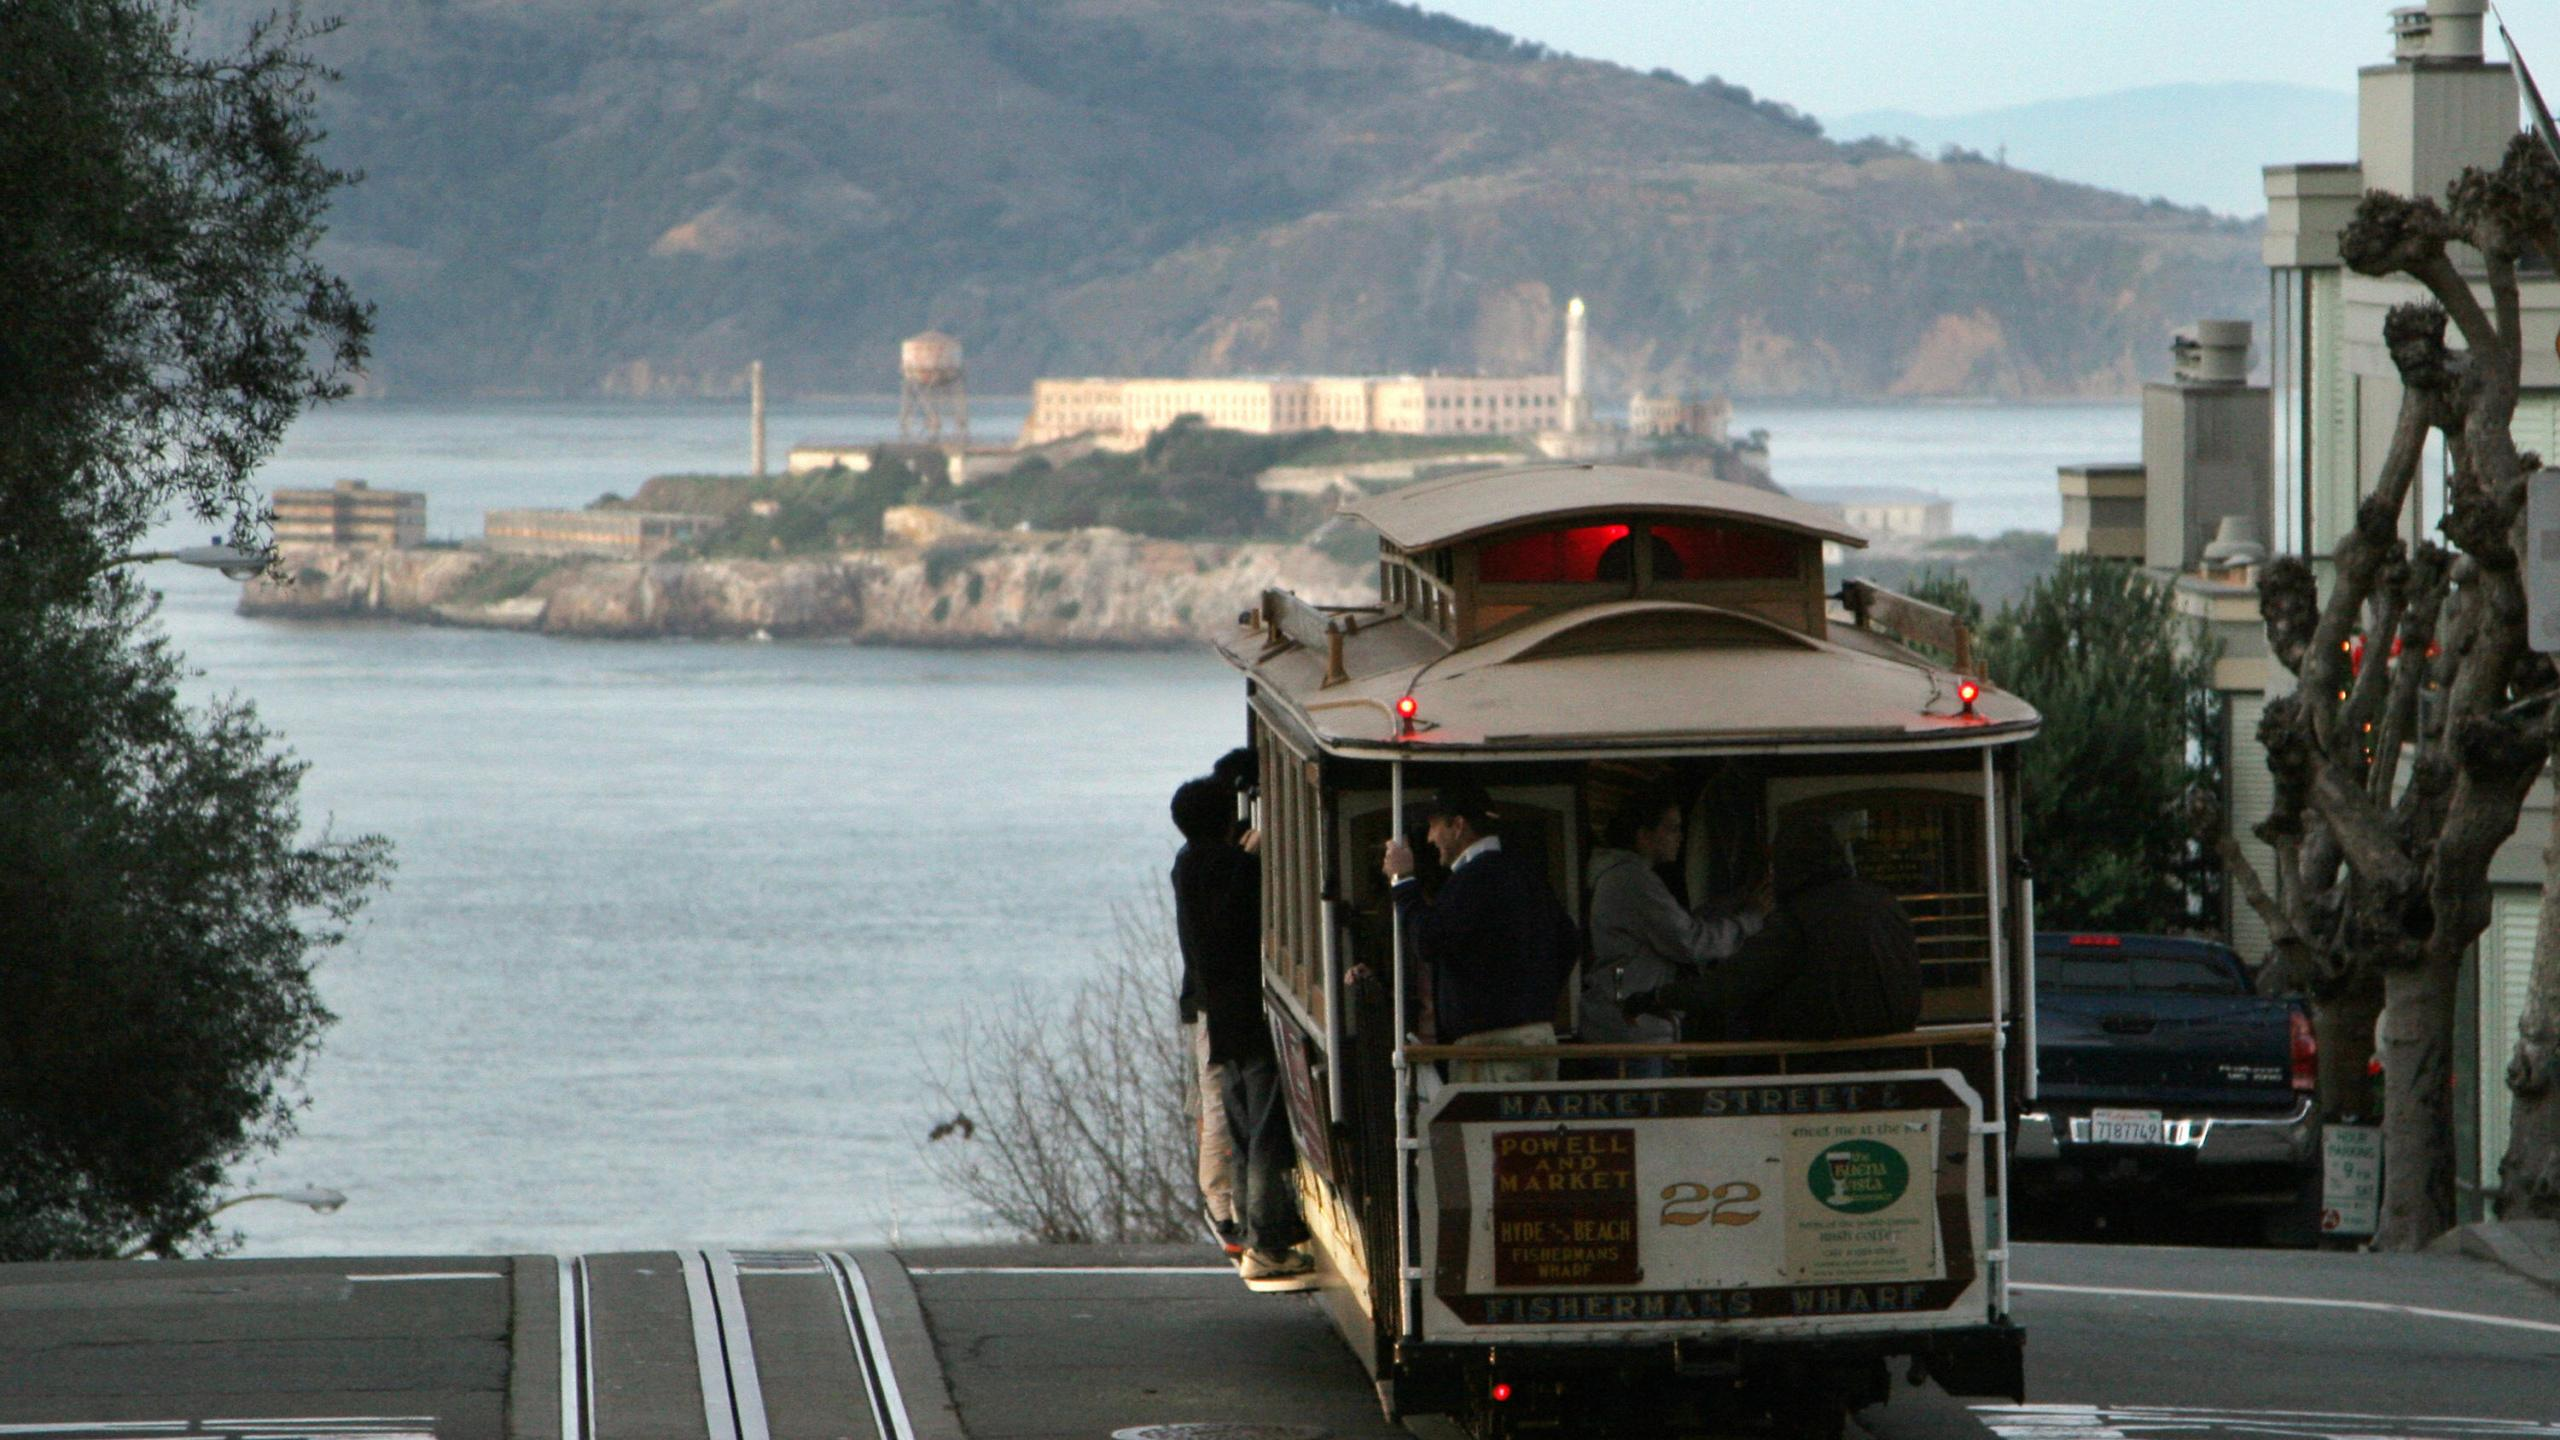 A cable car moves down to Fisherman's Wharf in San Francisco on Dec. 22, 2007. (Credit: GABRIEL BOUYS/AFP/Getty Images)